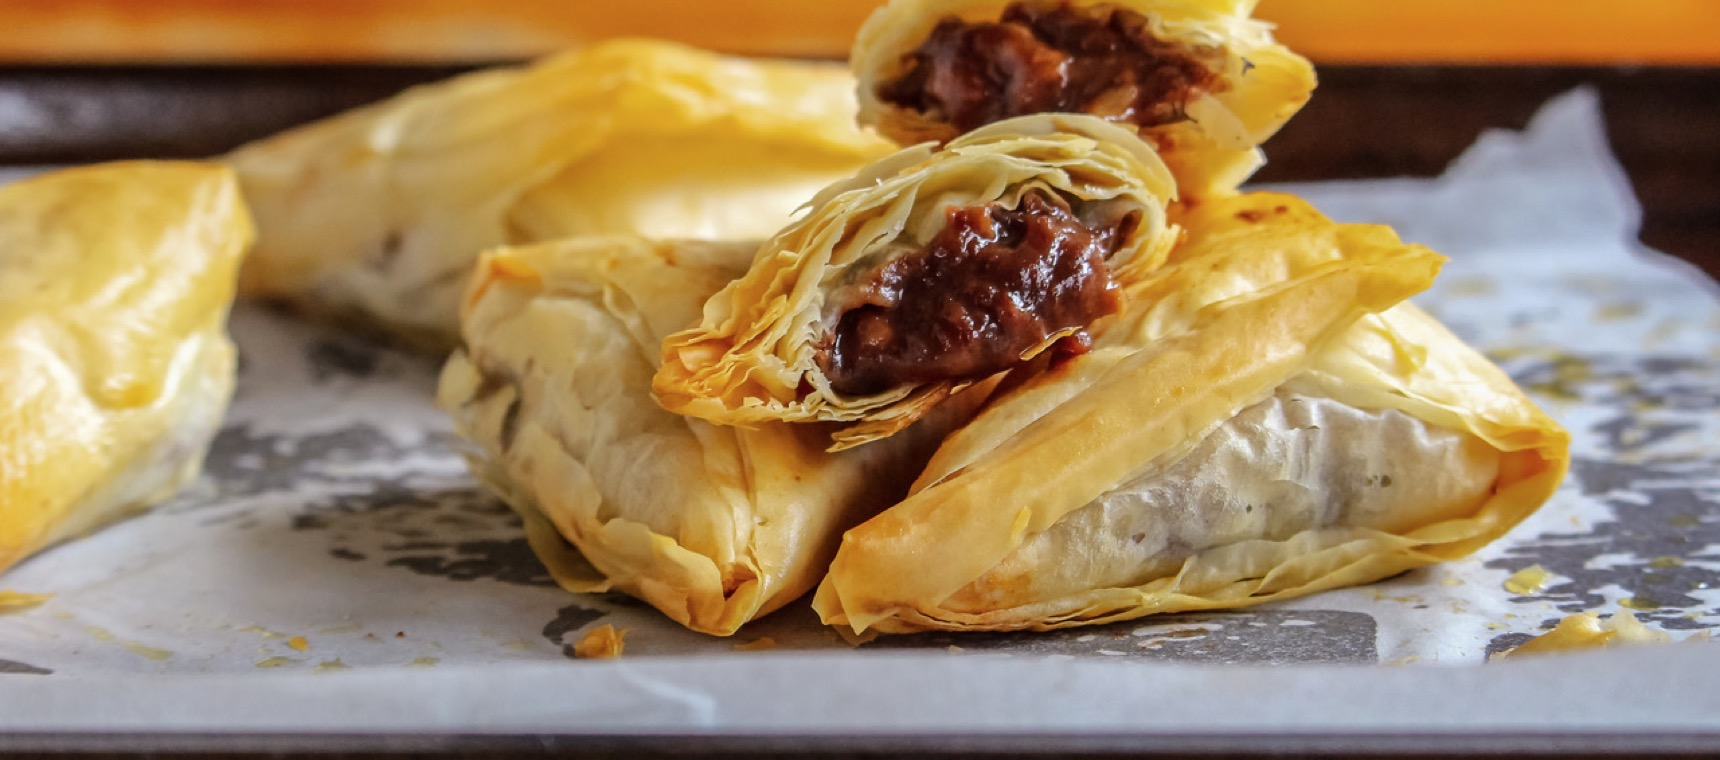 Banana Chocolate Filo Triangles